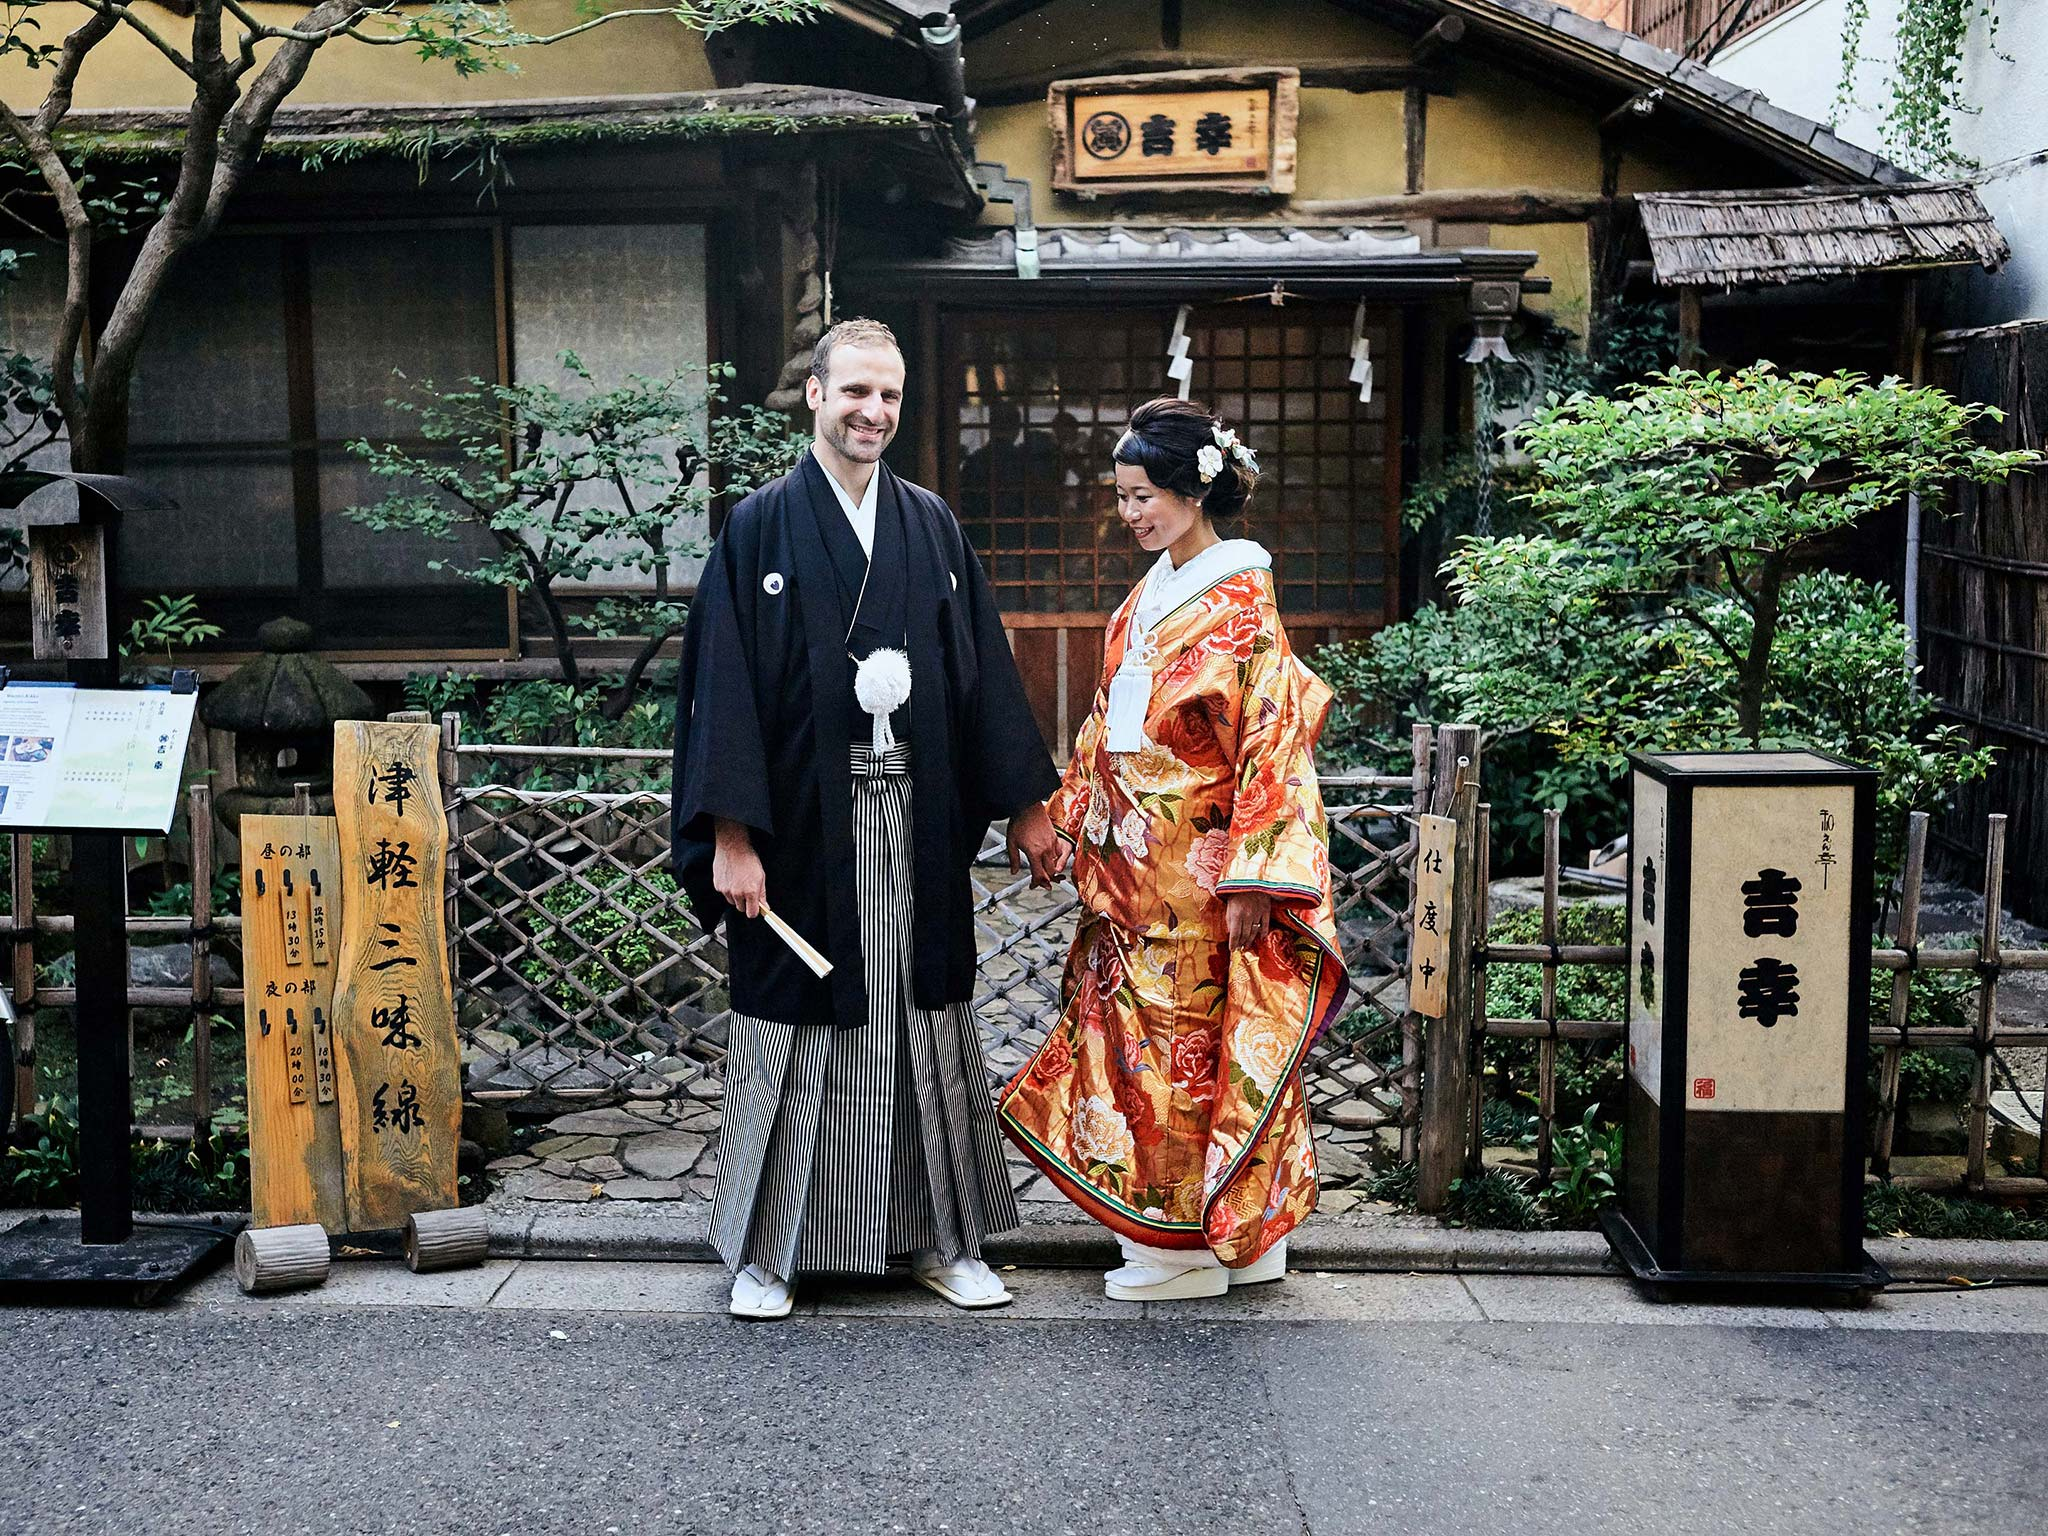 tokyo asakusa shrine traditional wedding portrait in front of old house